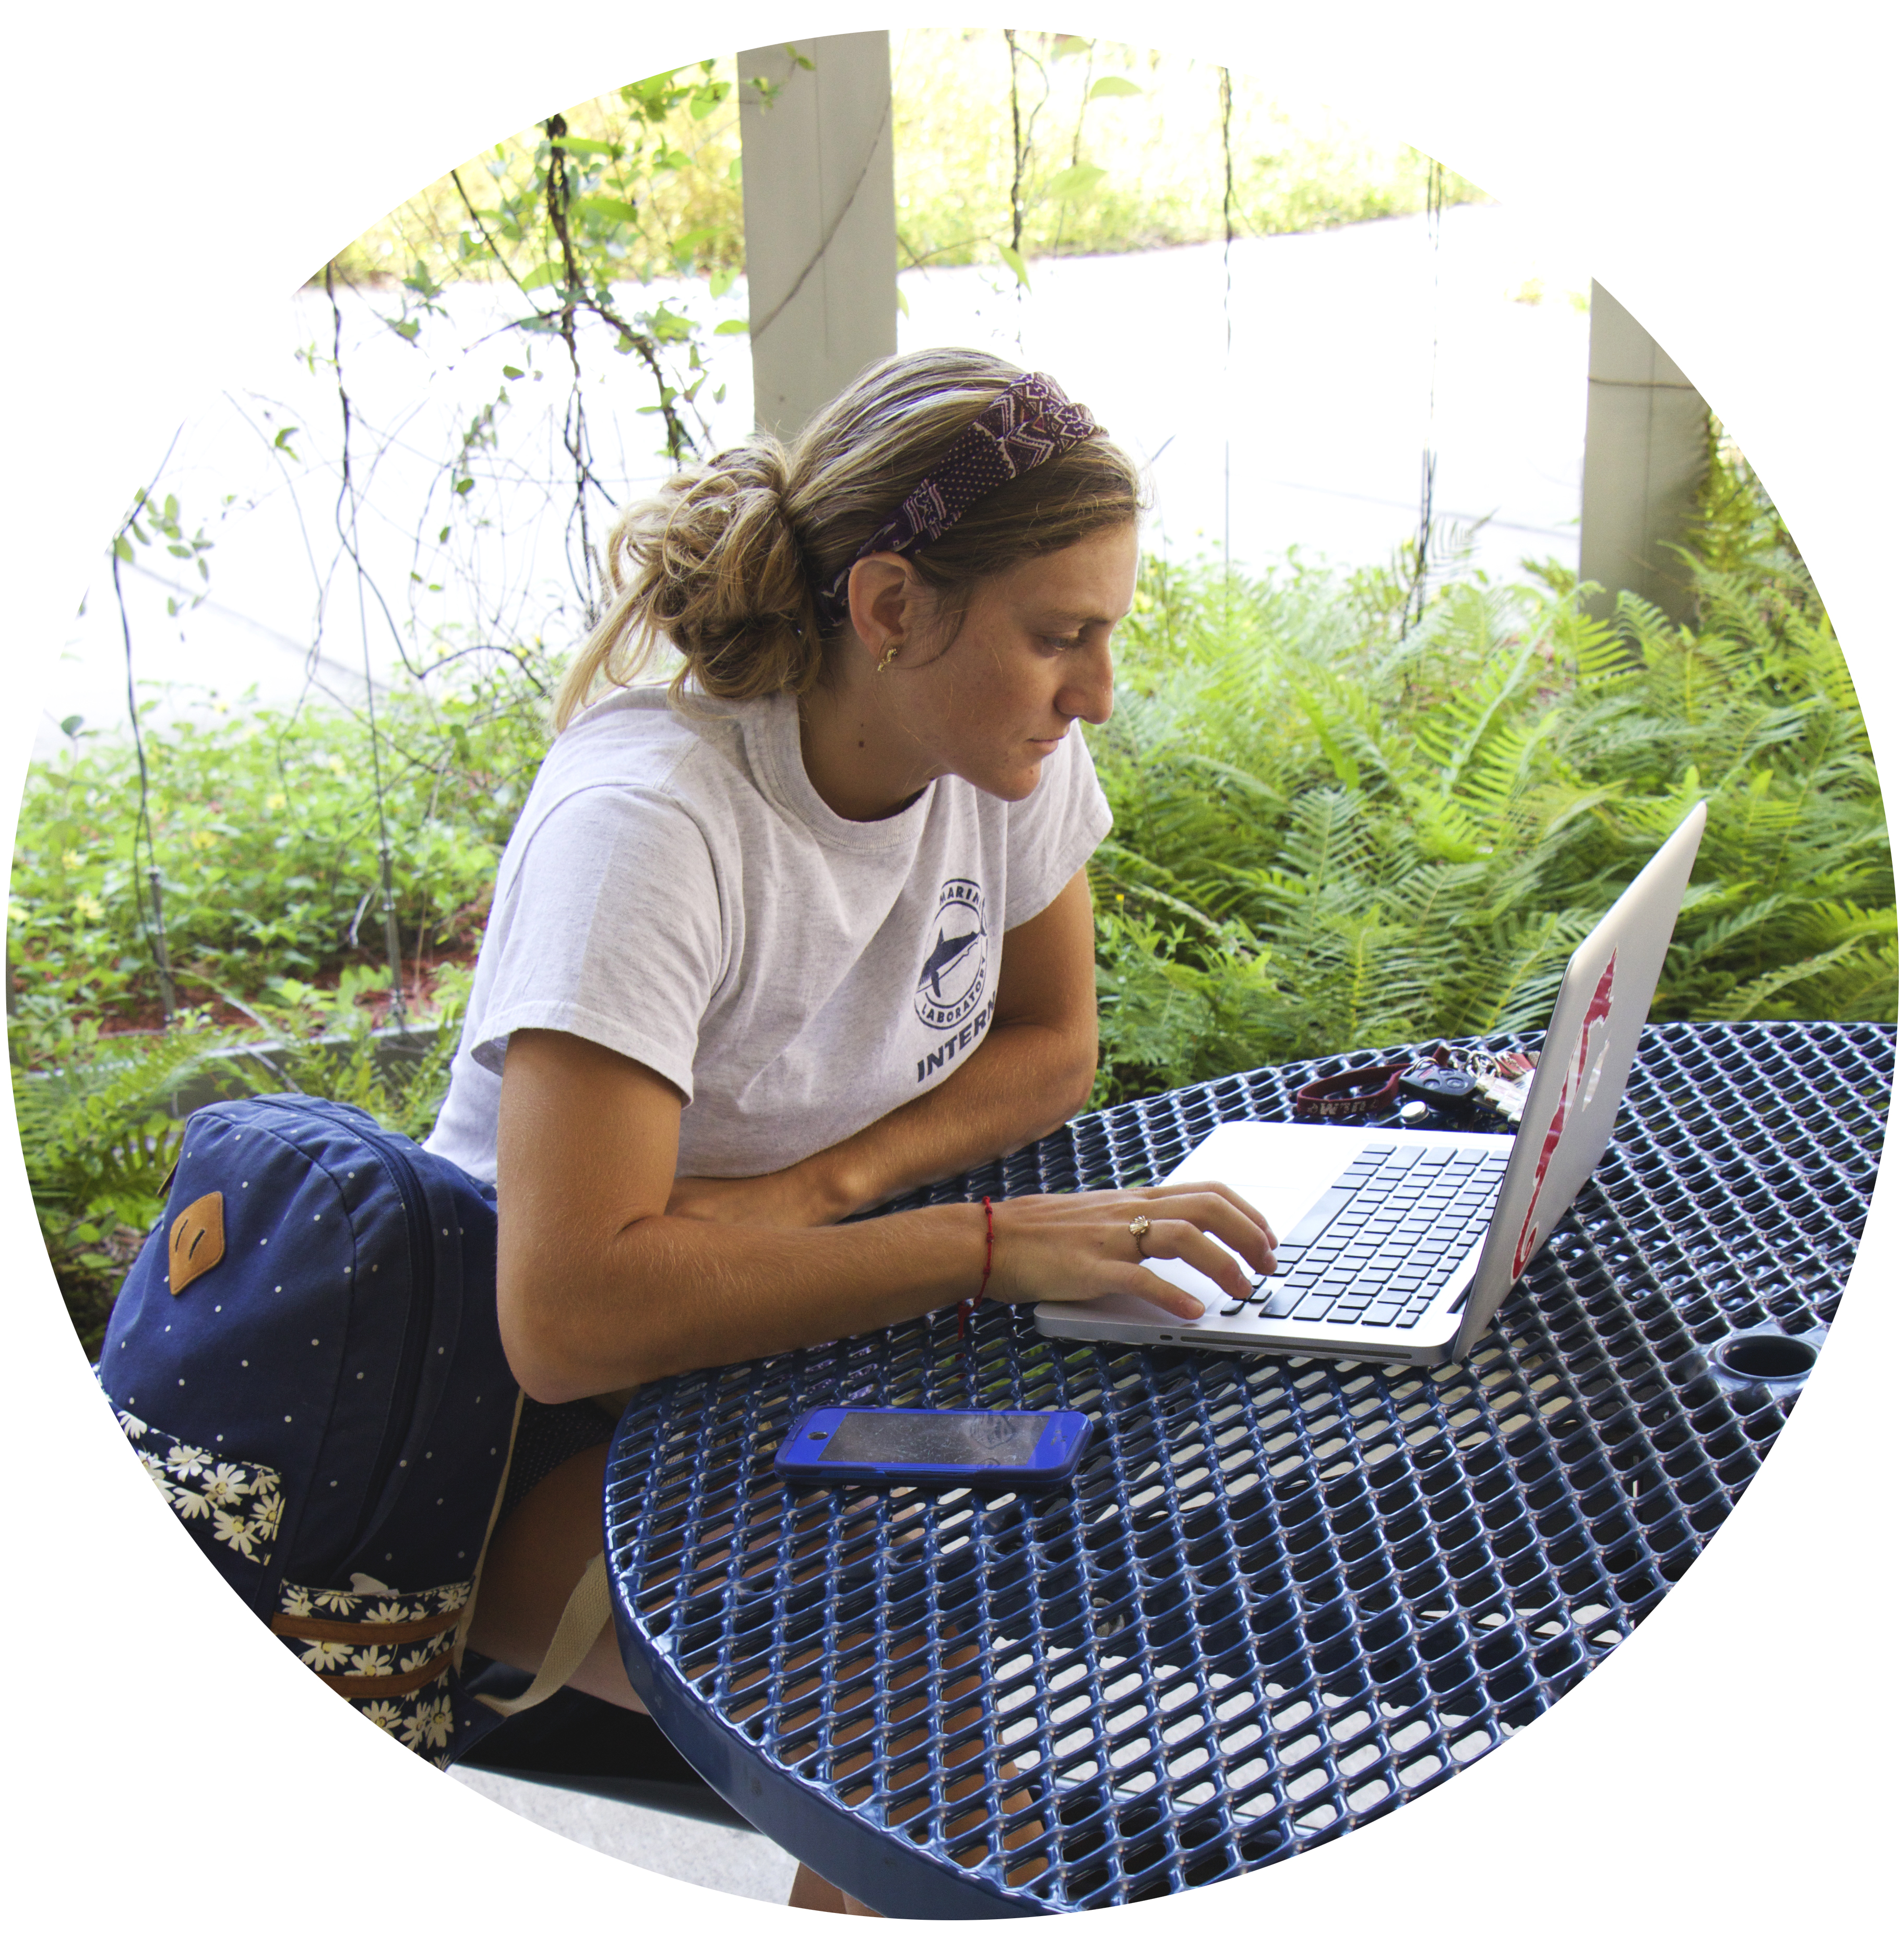 Student studying on her computer outside